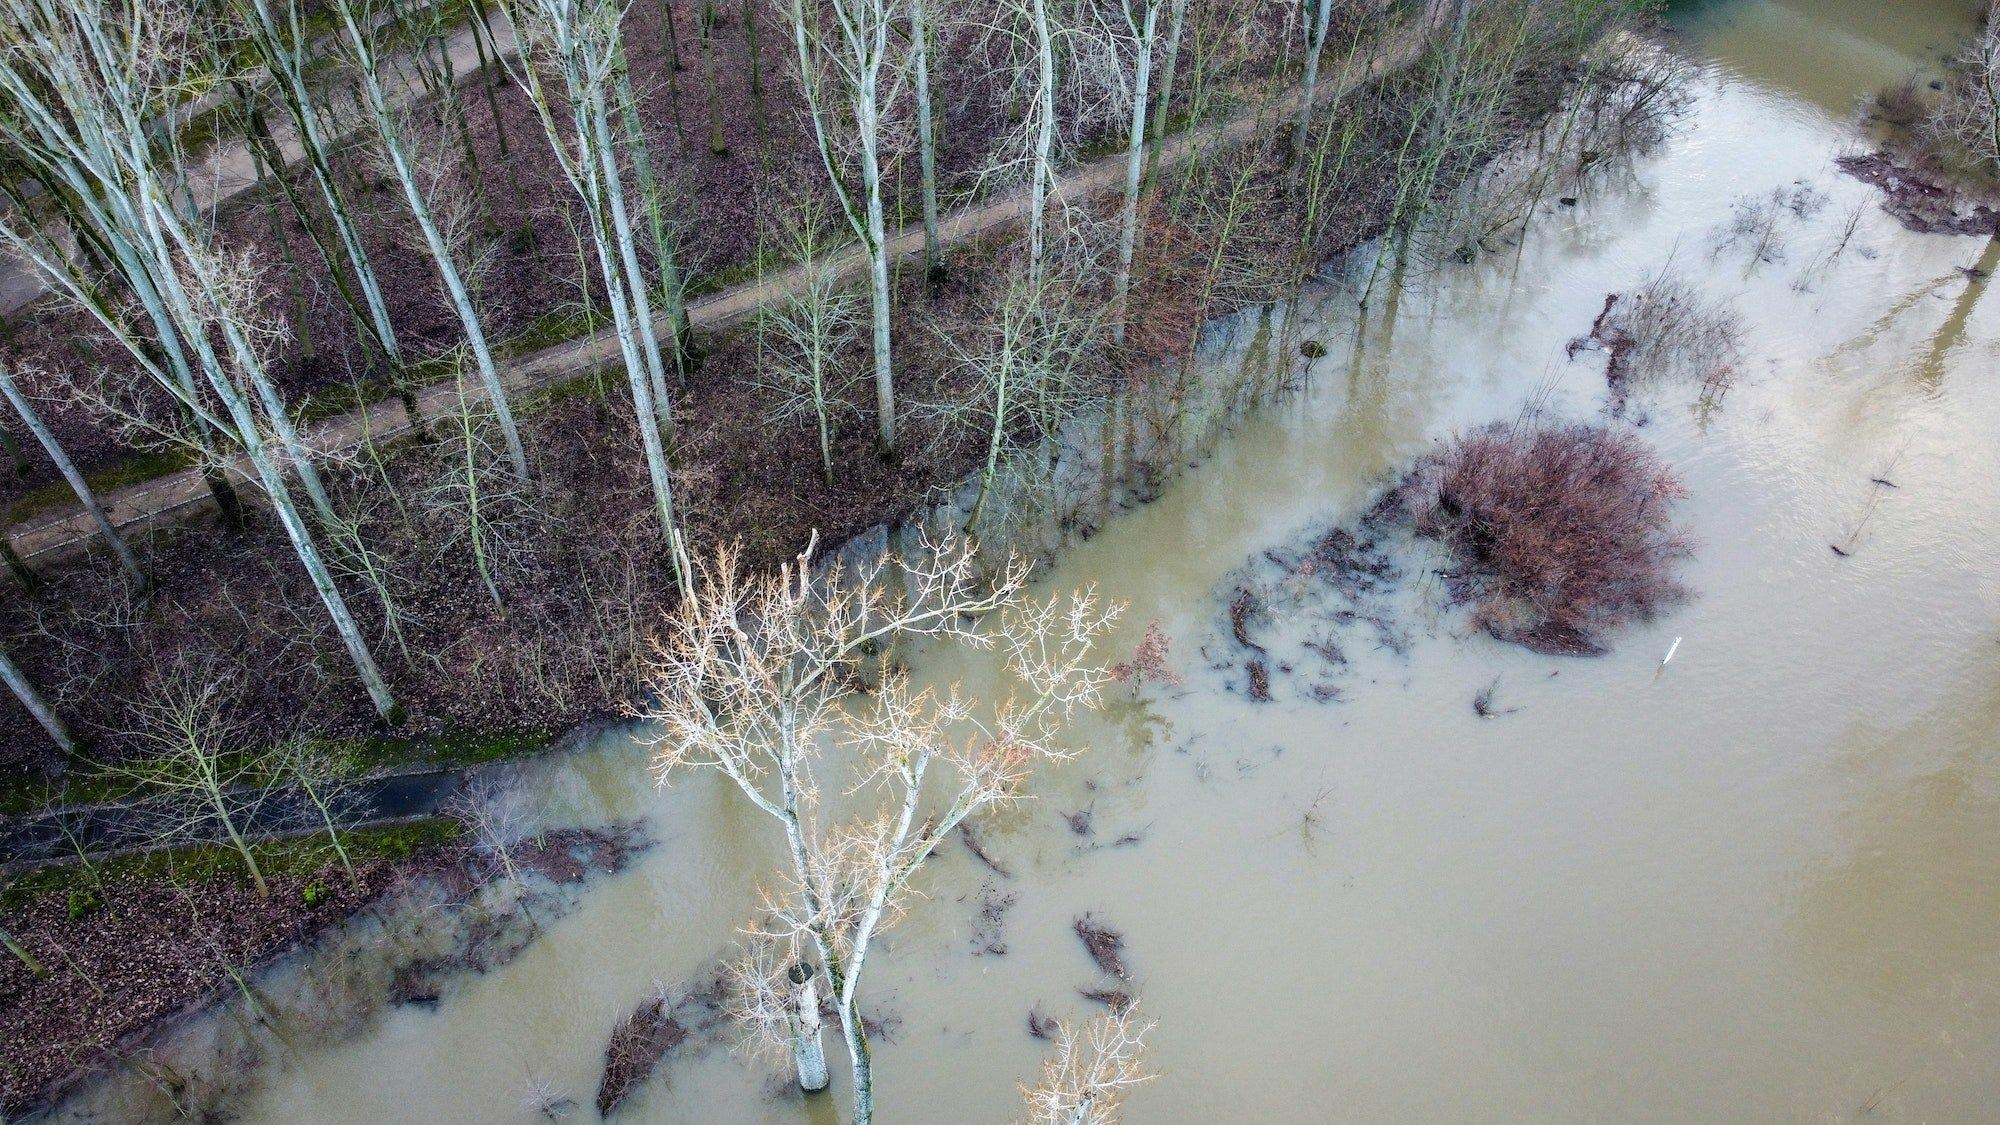 Plant Responses to Floods are Crucial in Modeling Soil Carbon Storage